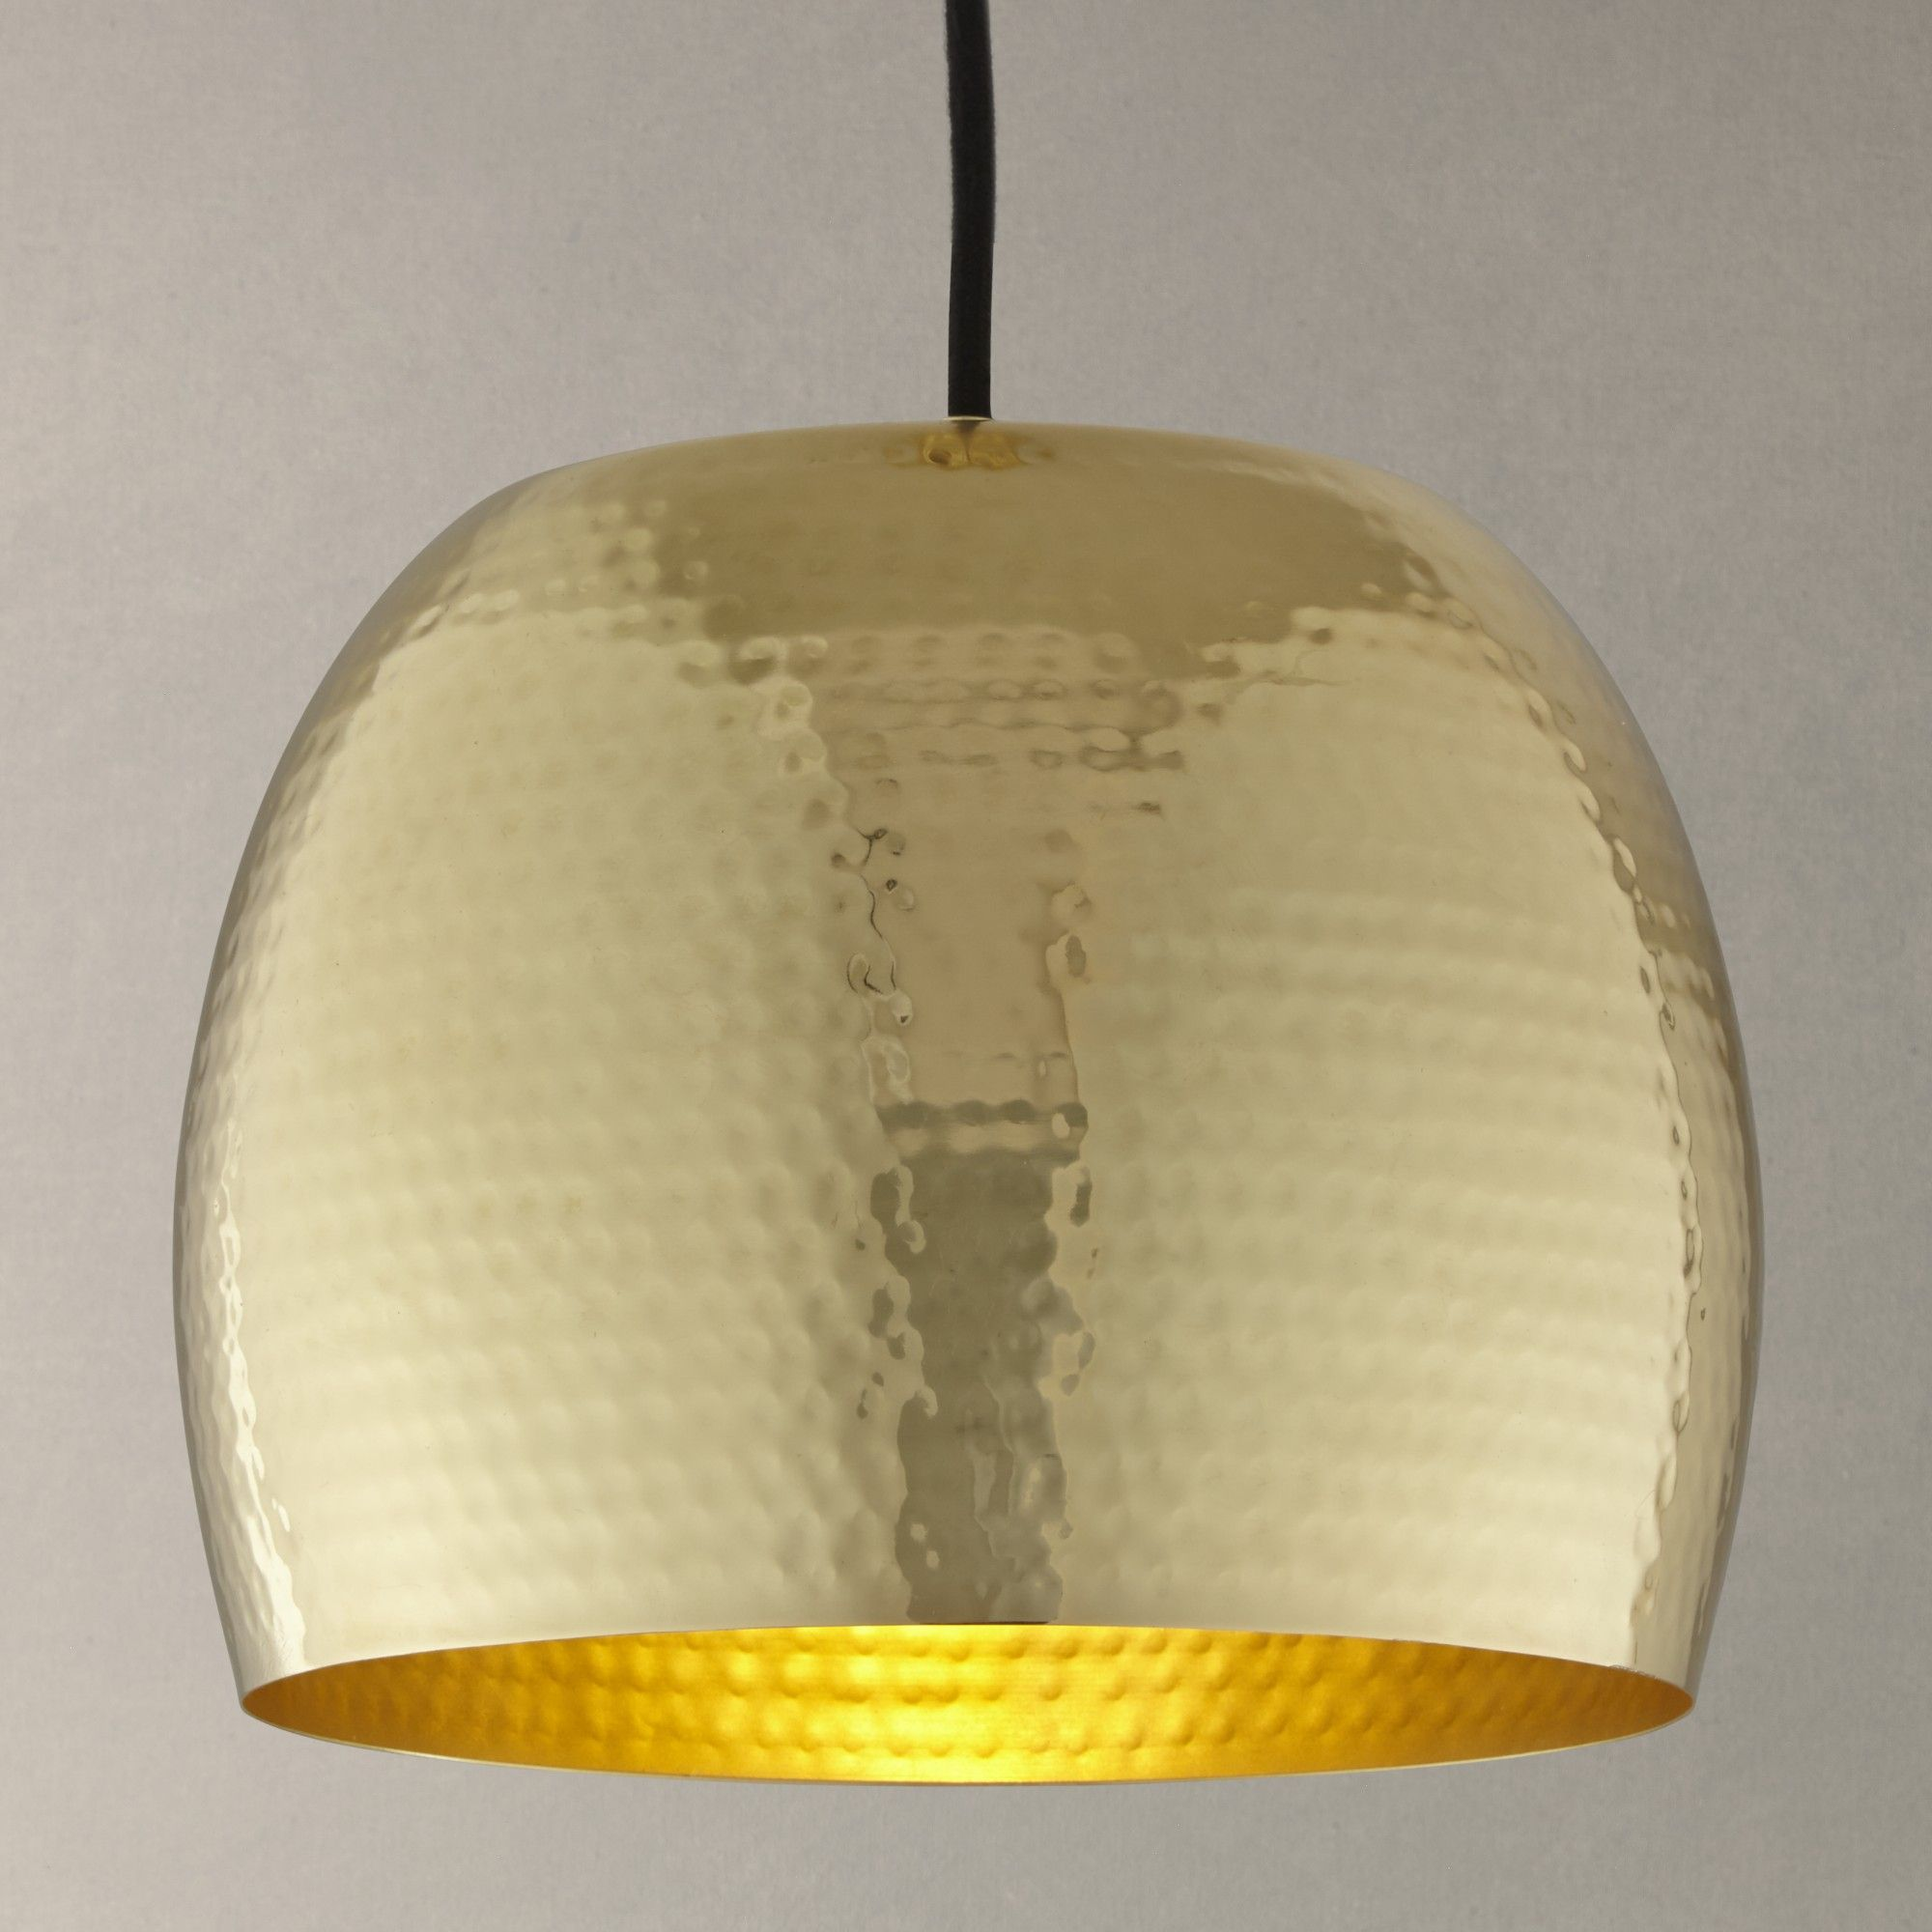 Buy John Lewis Thalia Hammered Brass Pendant Light From Our Ceiling Lighting  Range At John Lewis. Free Delivery On Orders Over